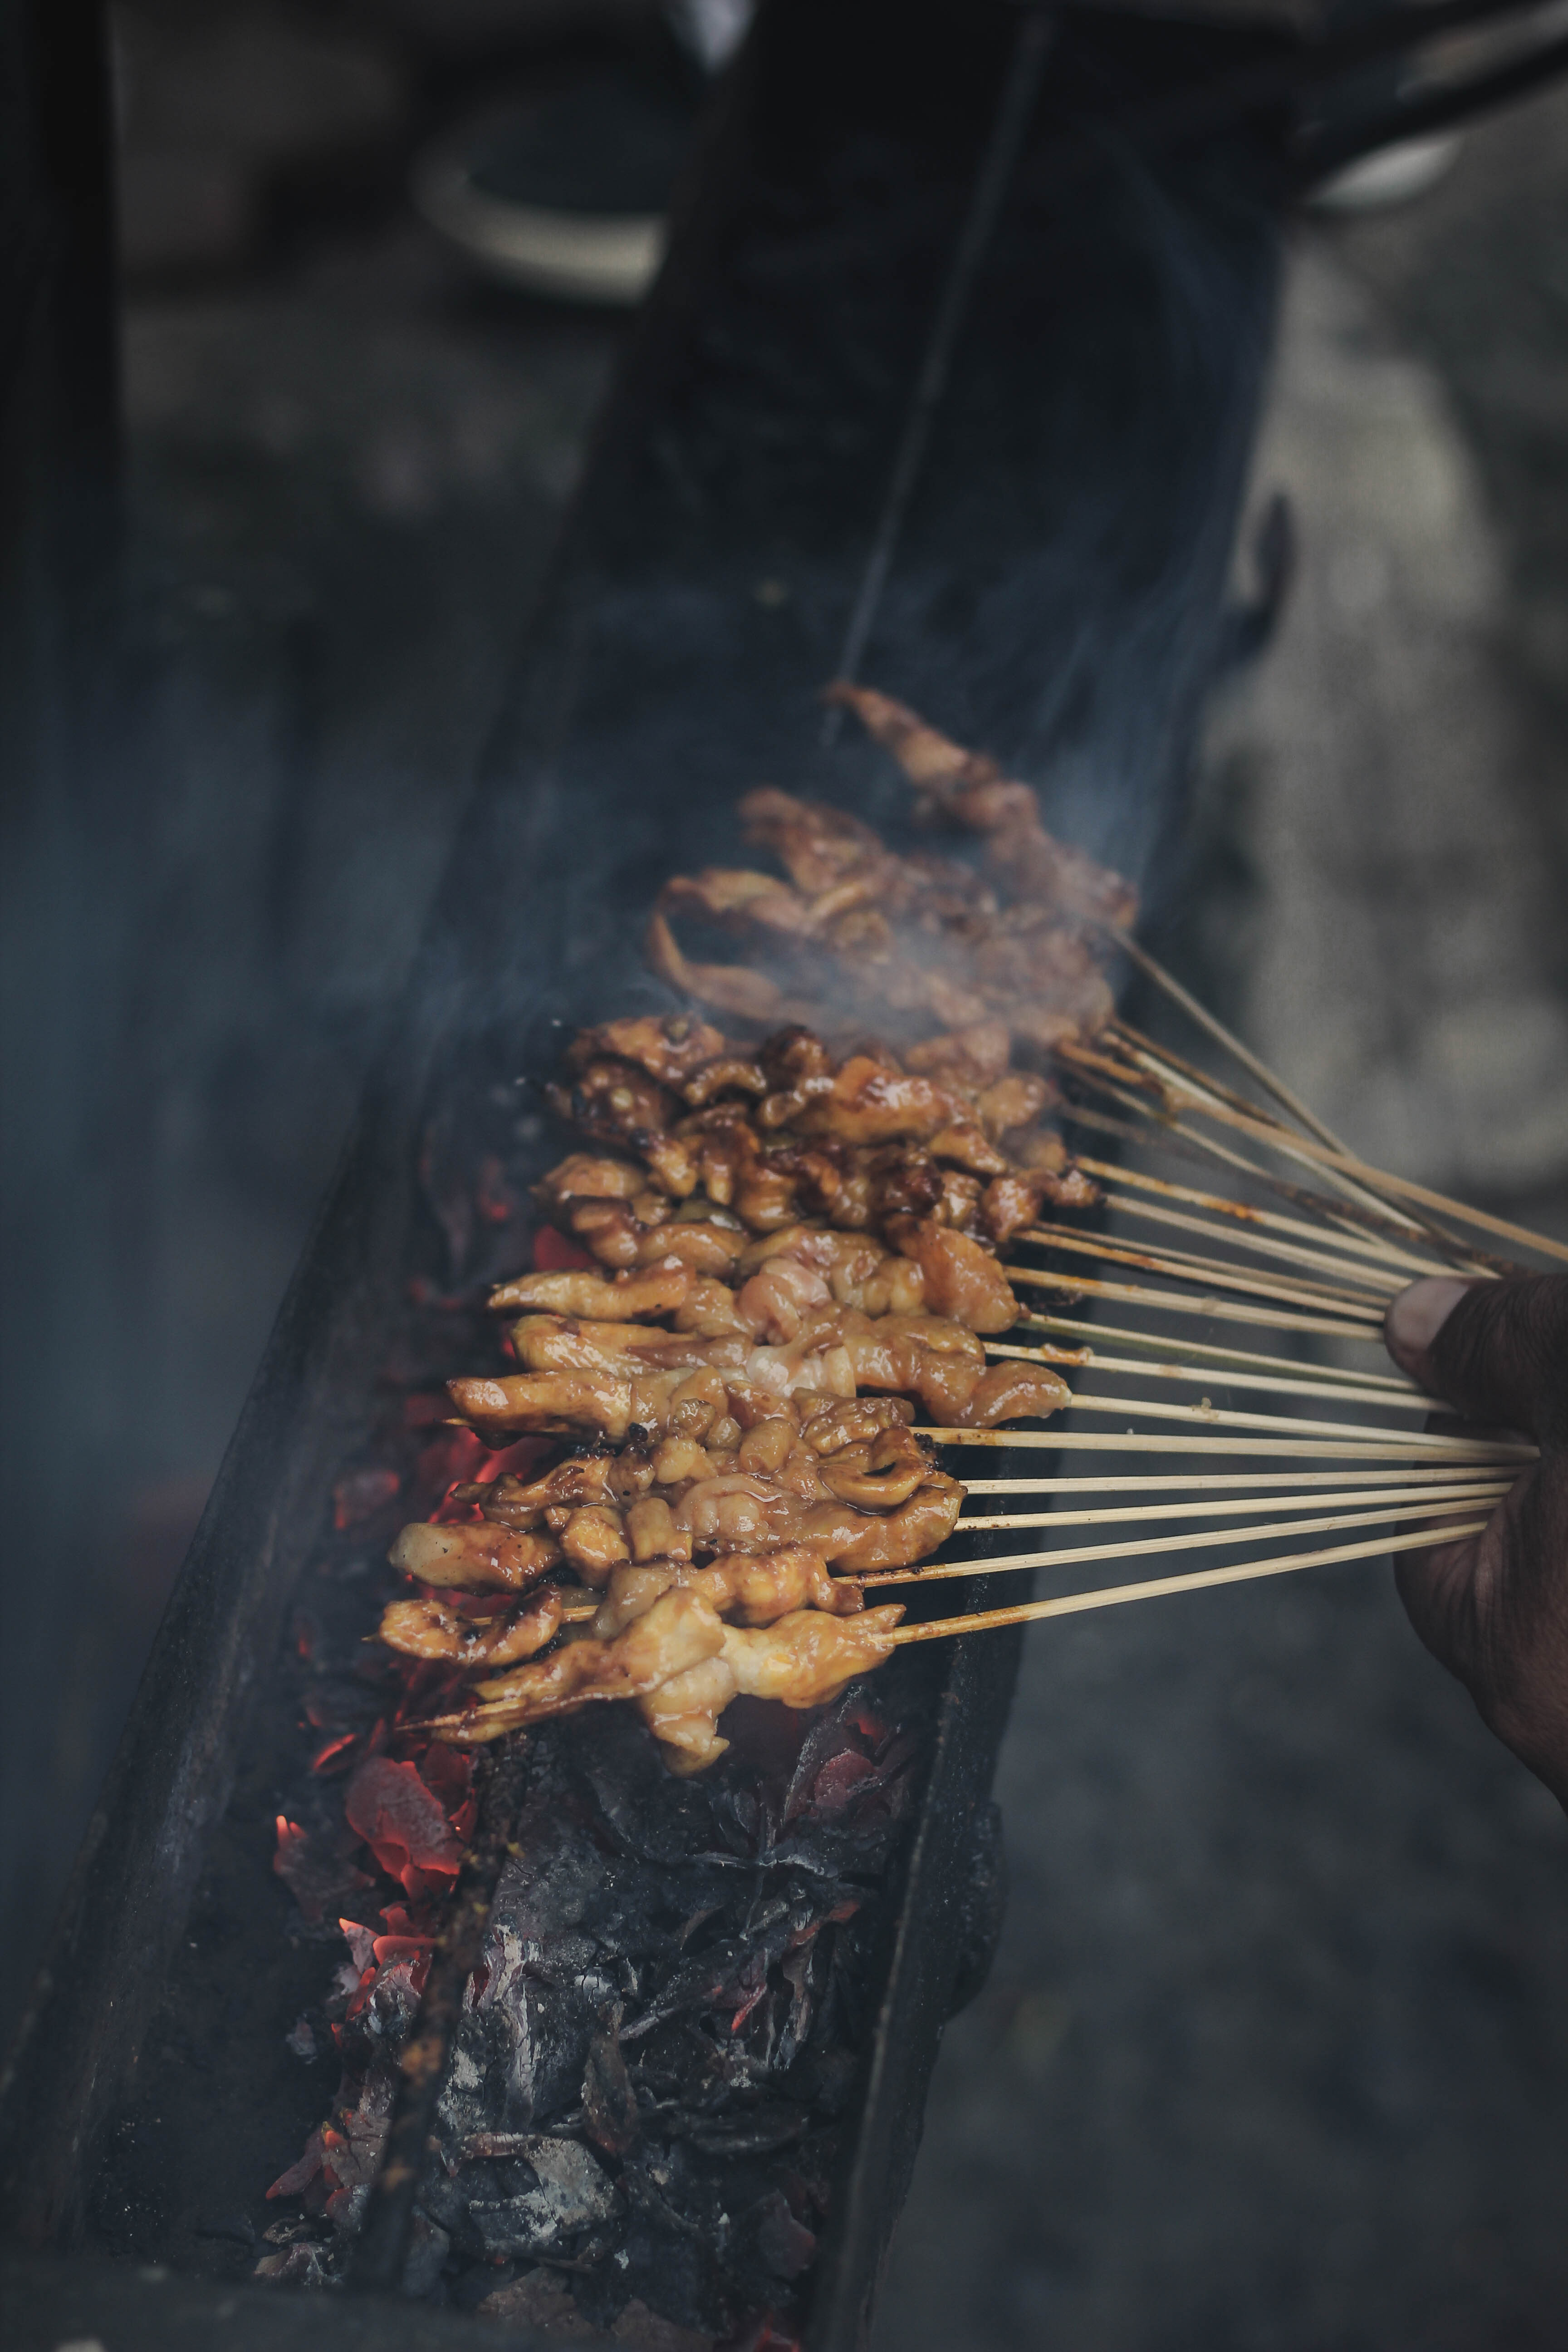 500  Street Photography Pictures  HQ    Download Free Images on Unsplash person holding skewered meat